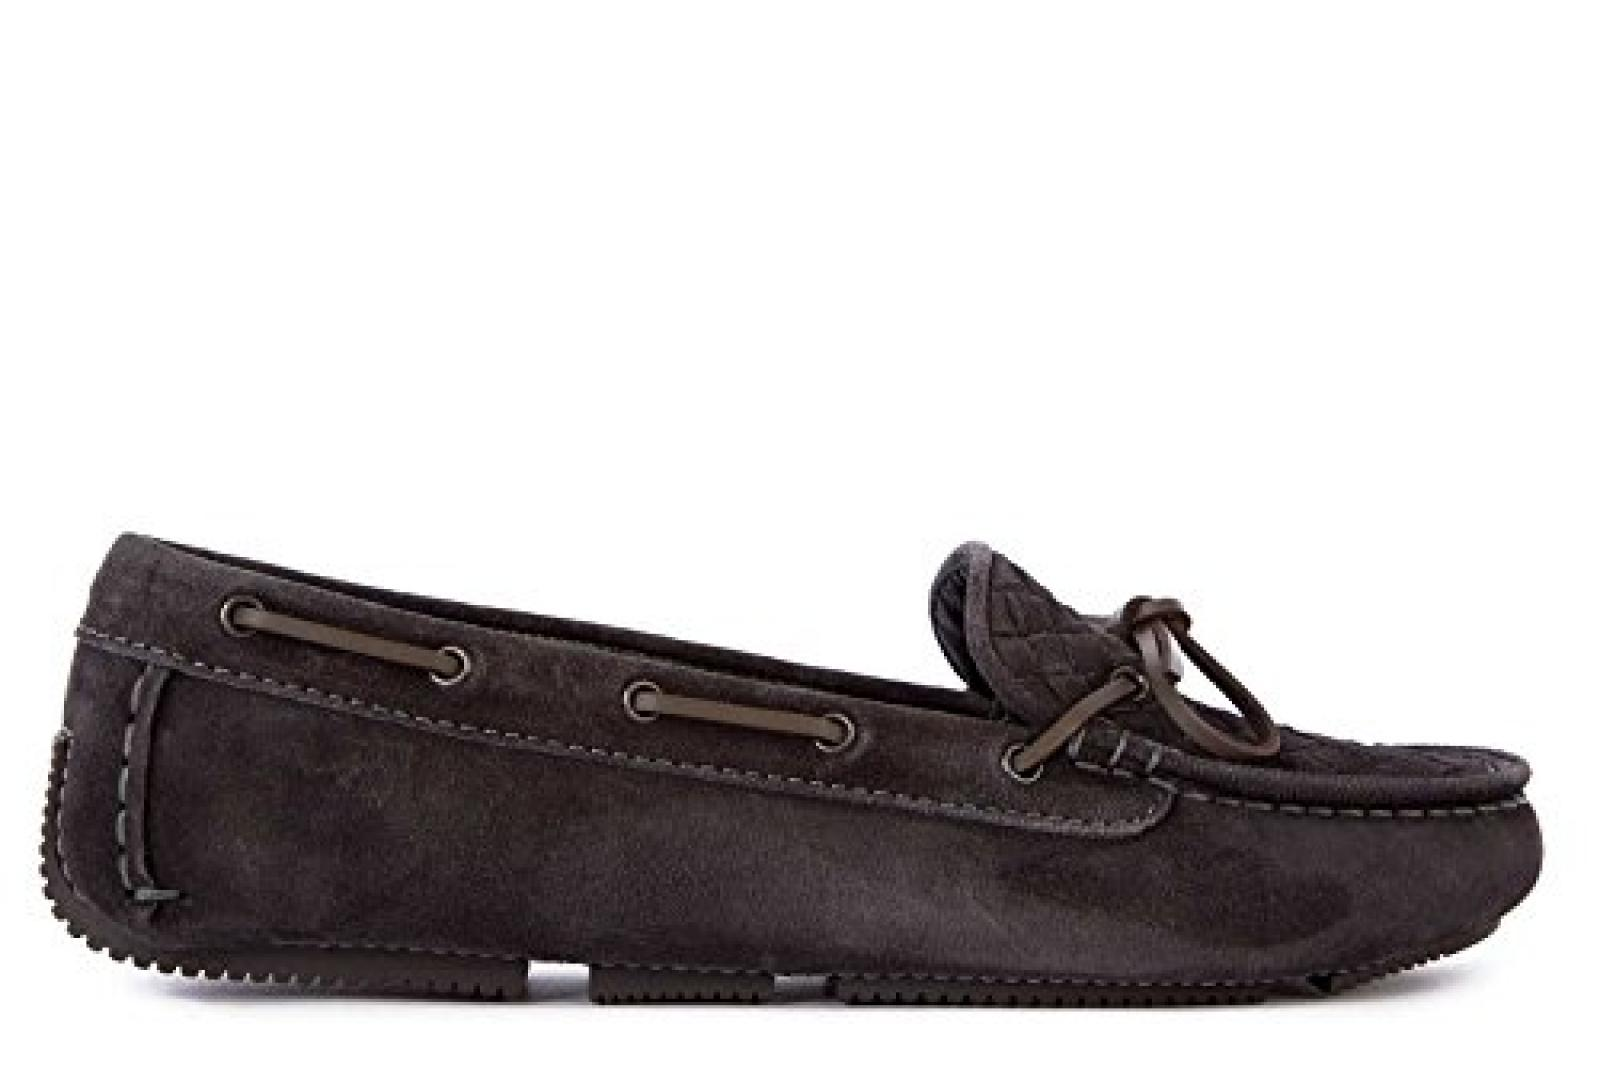 Bottega Veneta Damen Wildleder Mokassins Slipper Grau